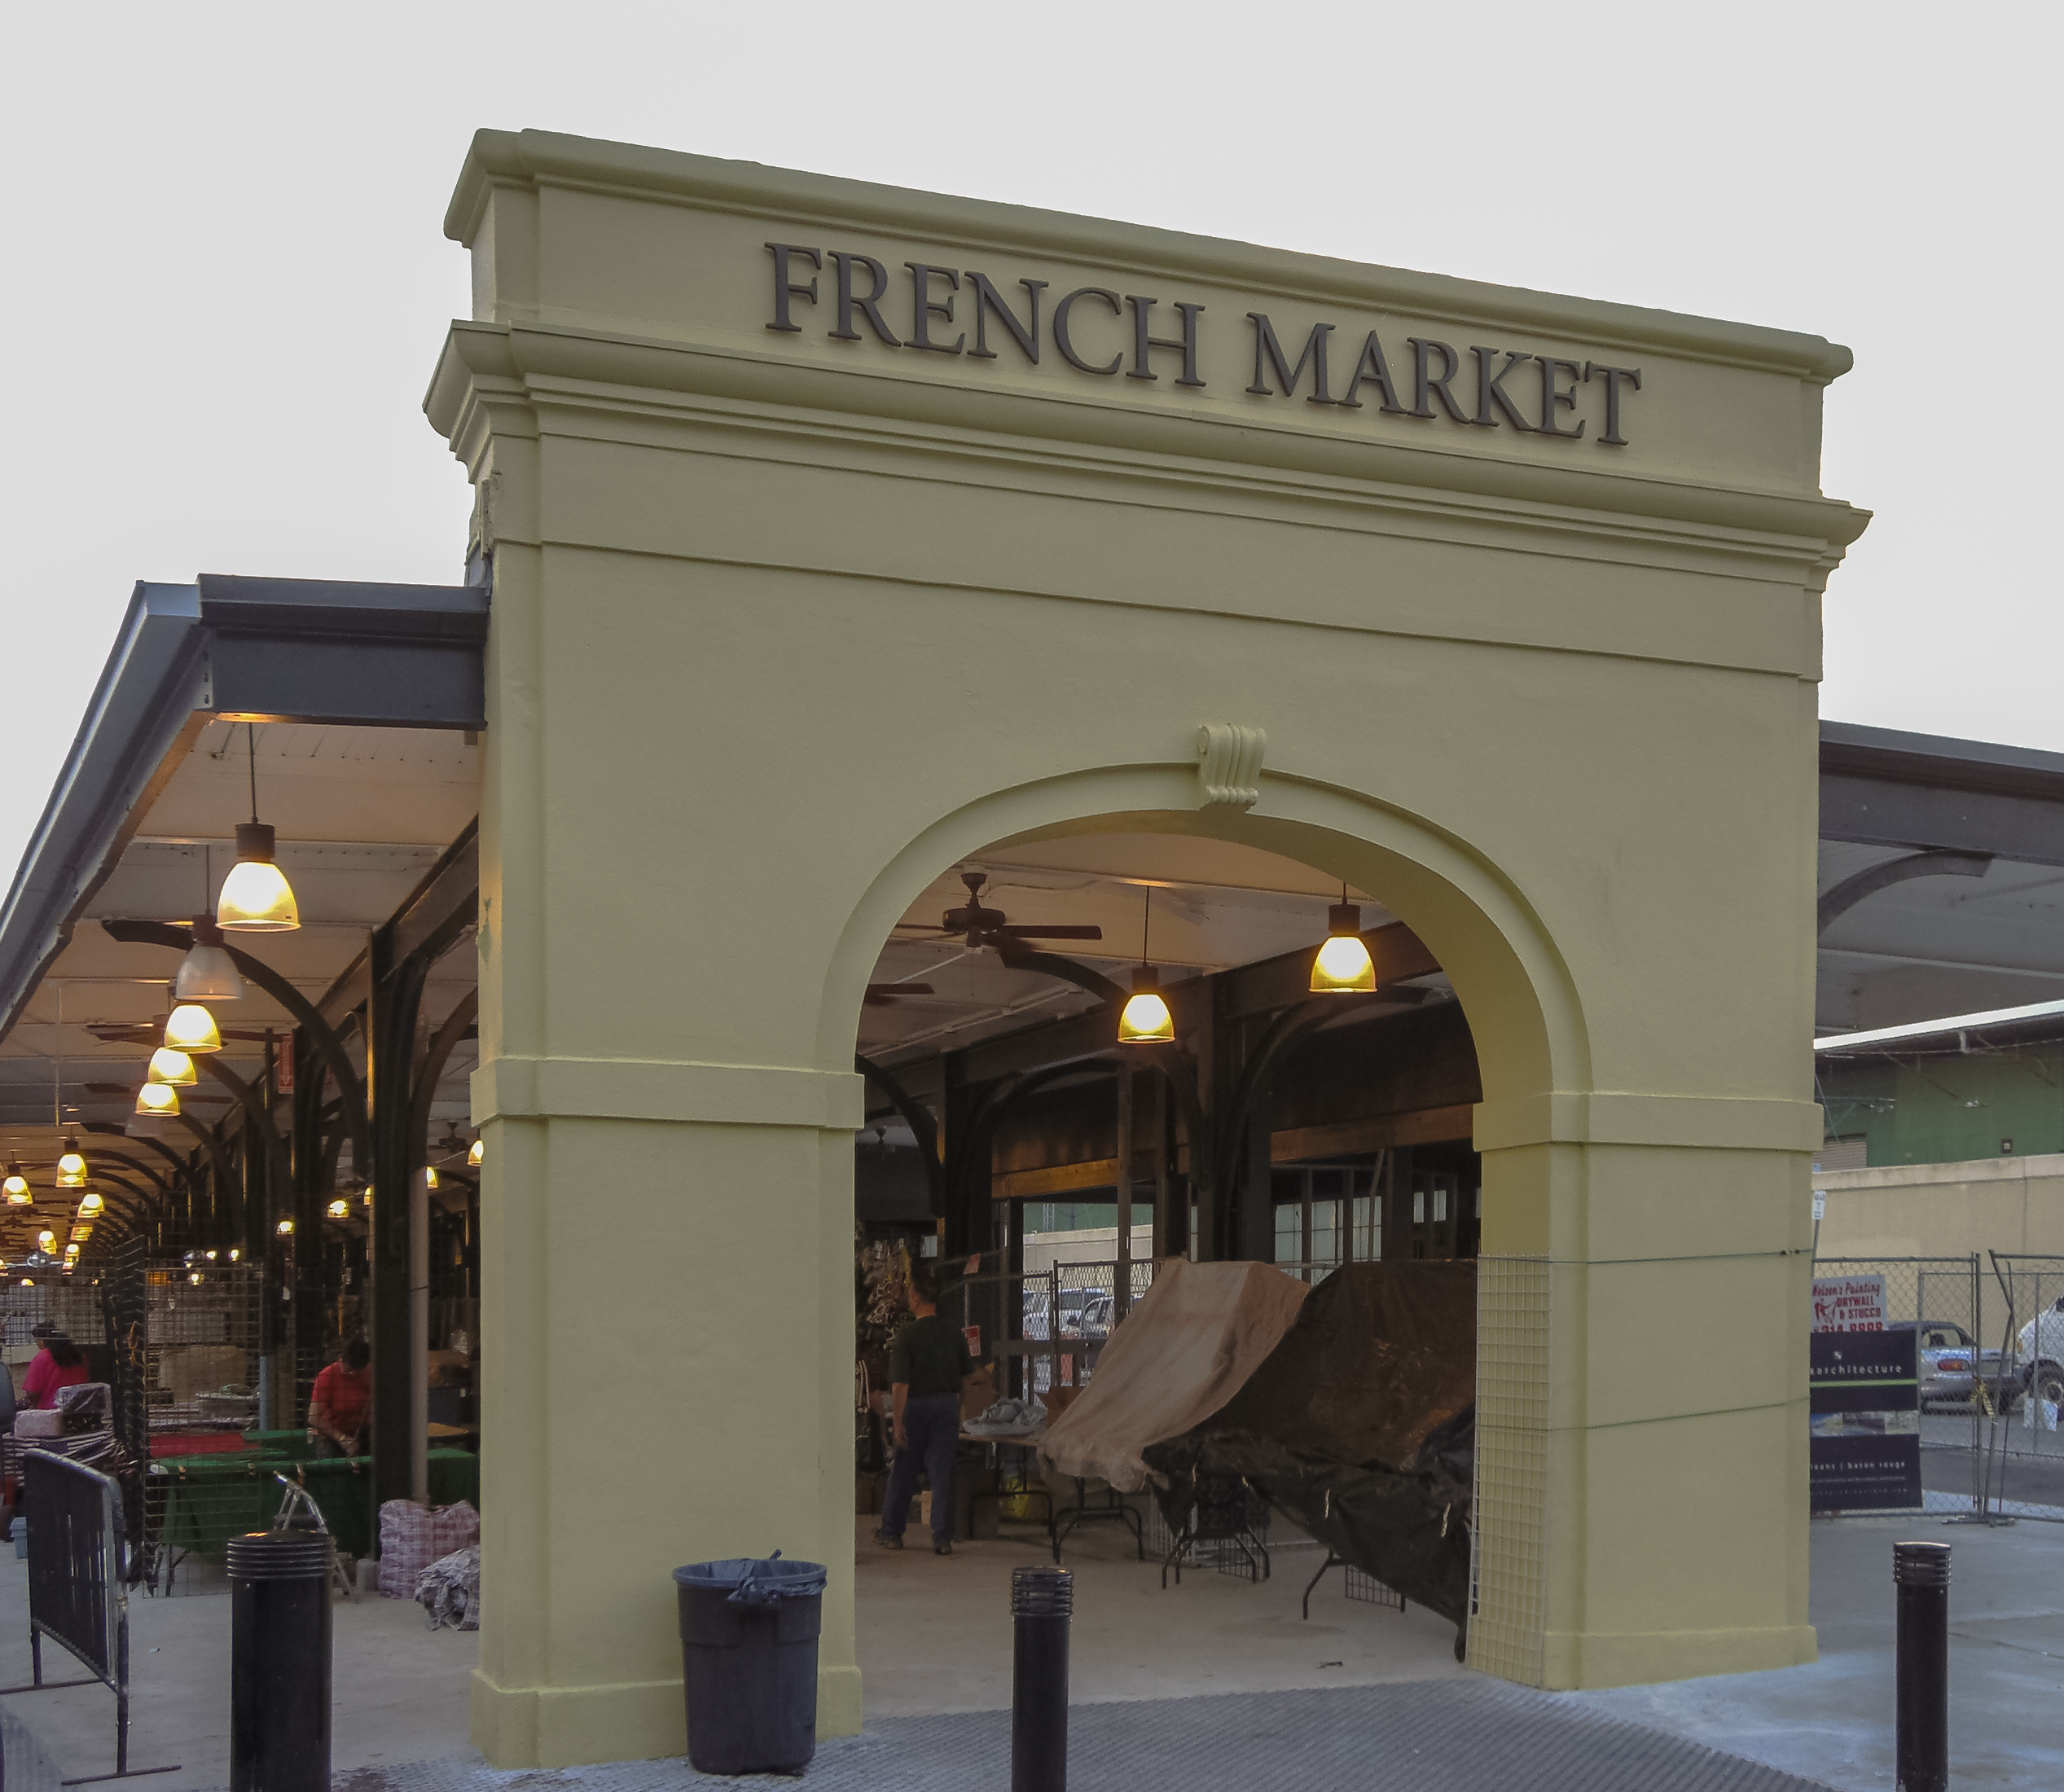 How Market Works >> File:French Market, New Orleans, USA1.jpg - Wikimedia Commons